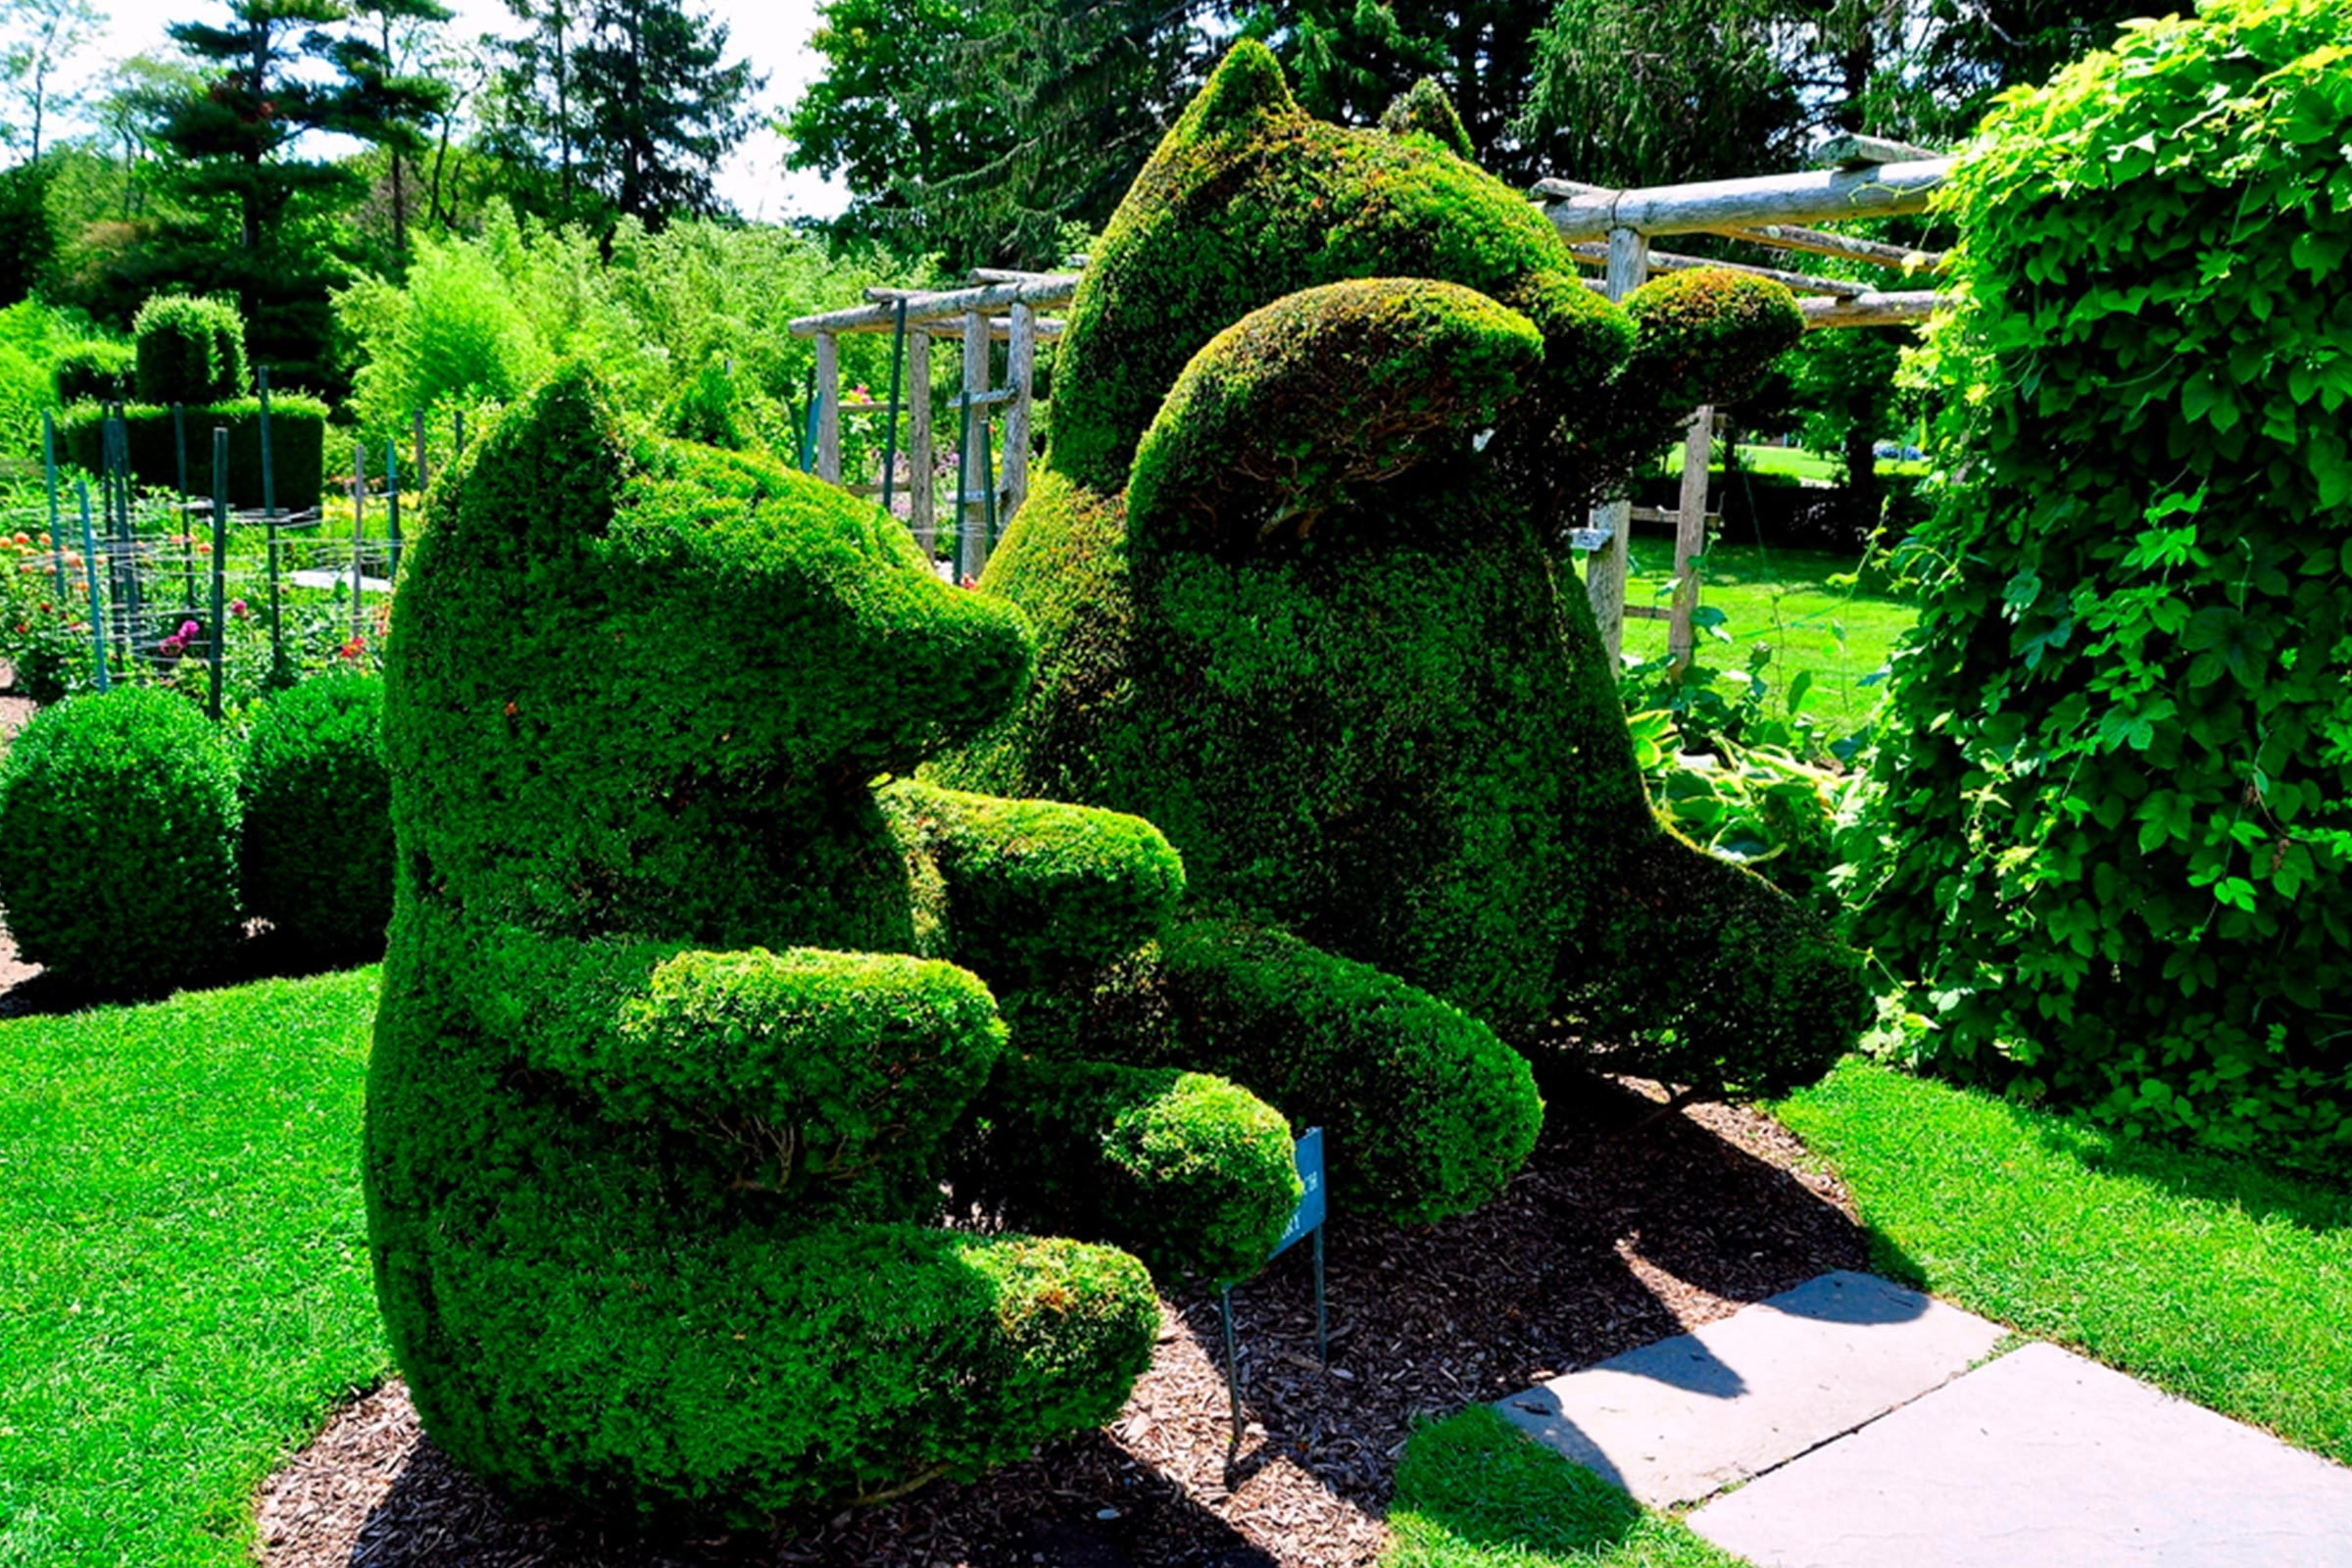 RI, Green animals topiary garden